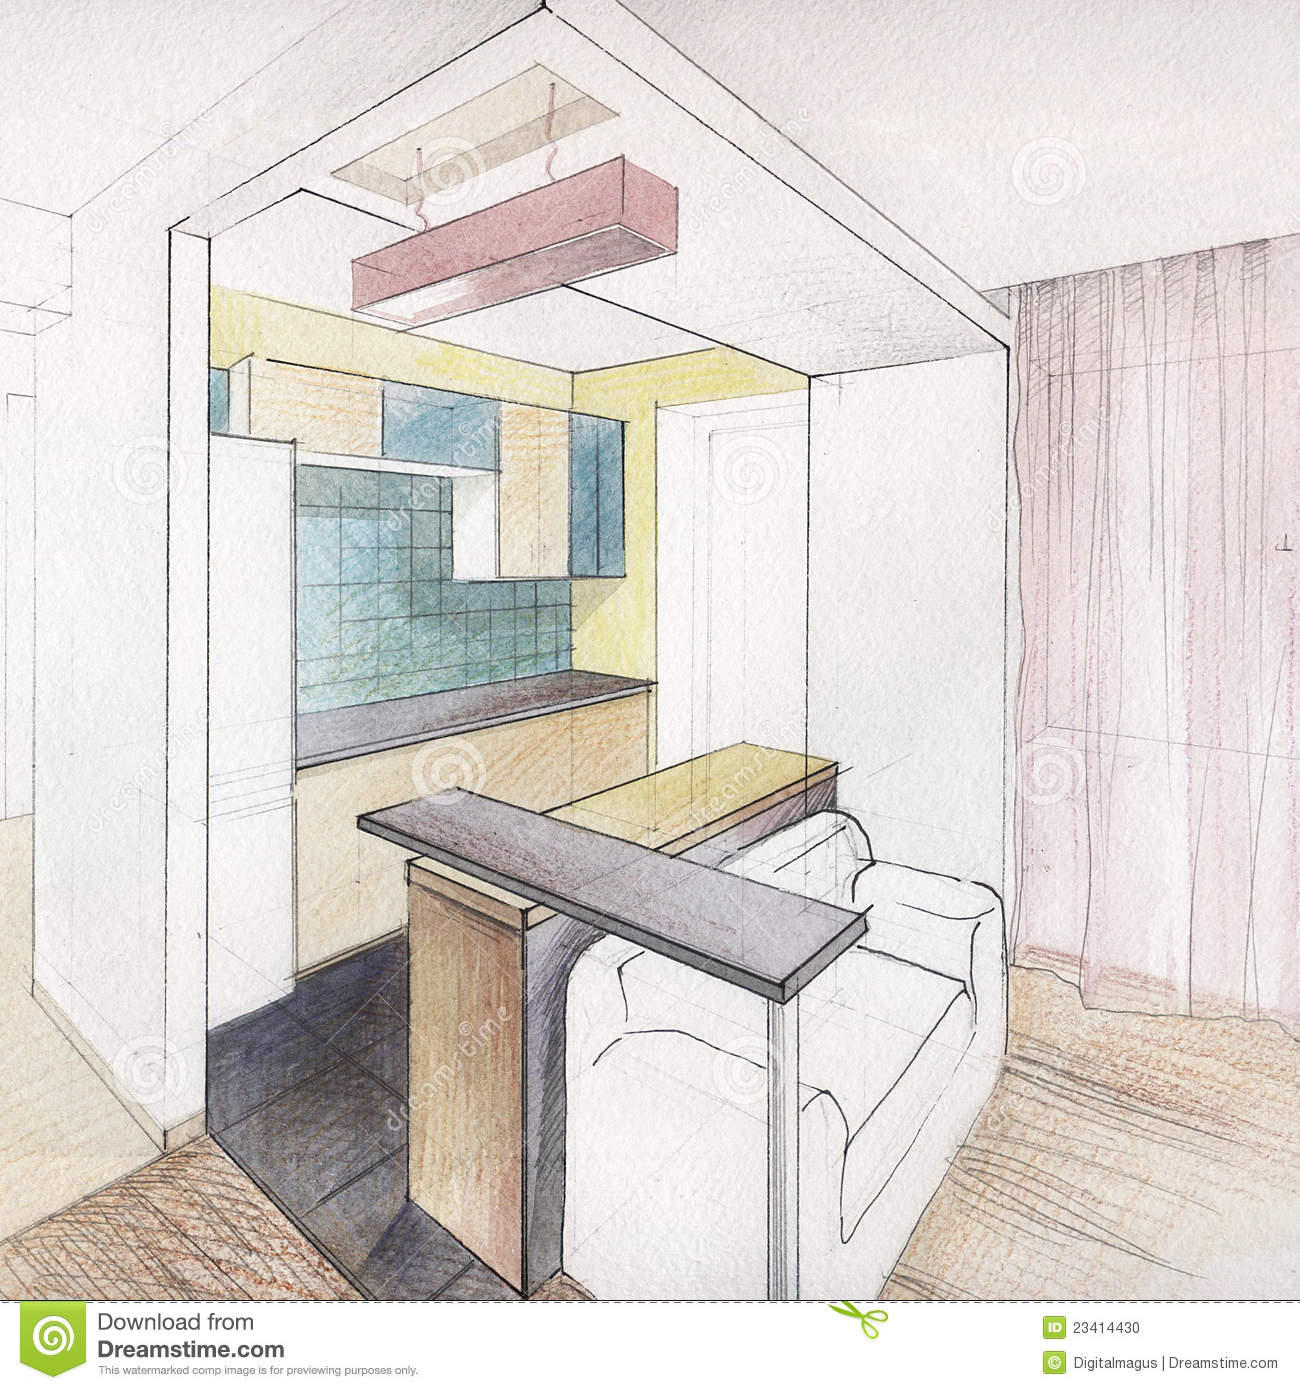 Kitchen interior drawing stock illustration image of for Interior designs kitchen sketches